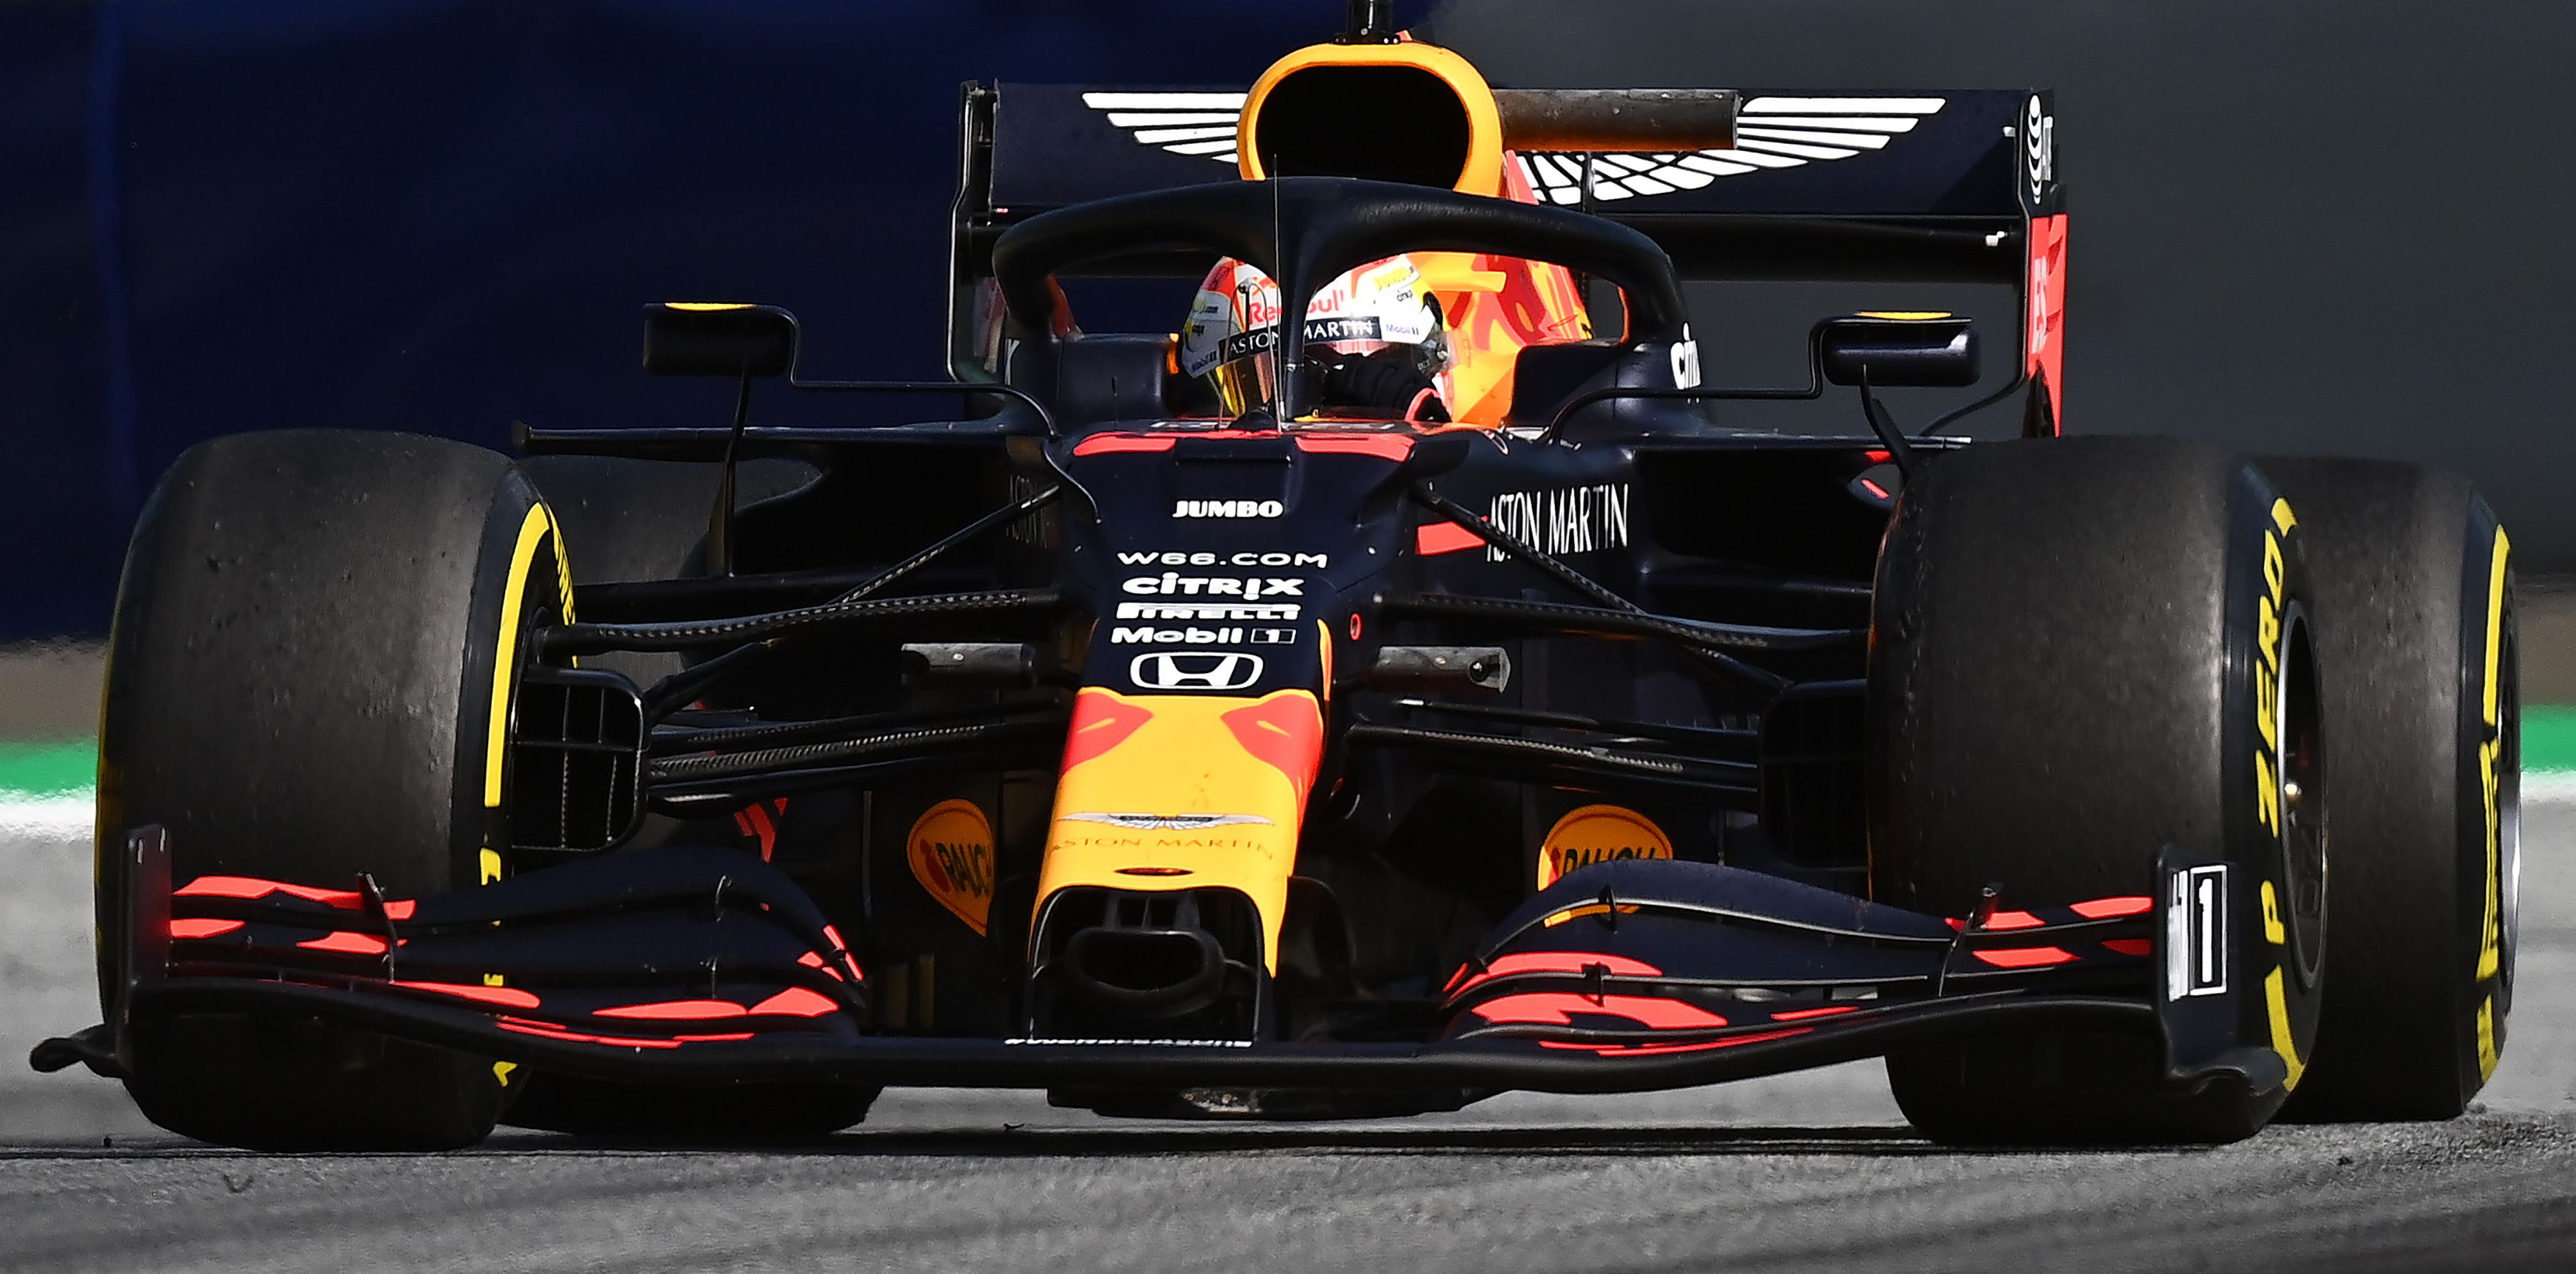 Friday F1 Practice Results Max Verstappen Red Bull Post Quickest Times For Styrian Grand Prix